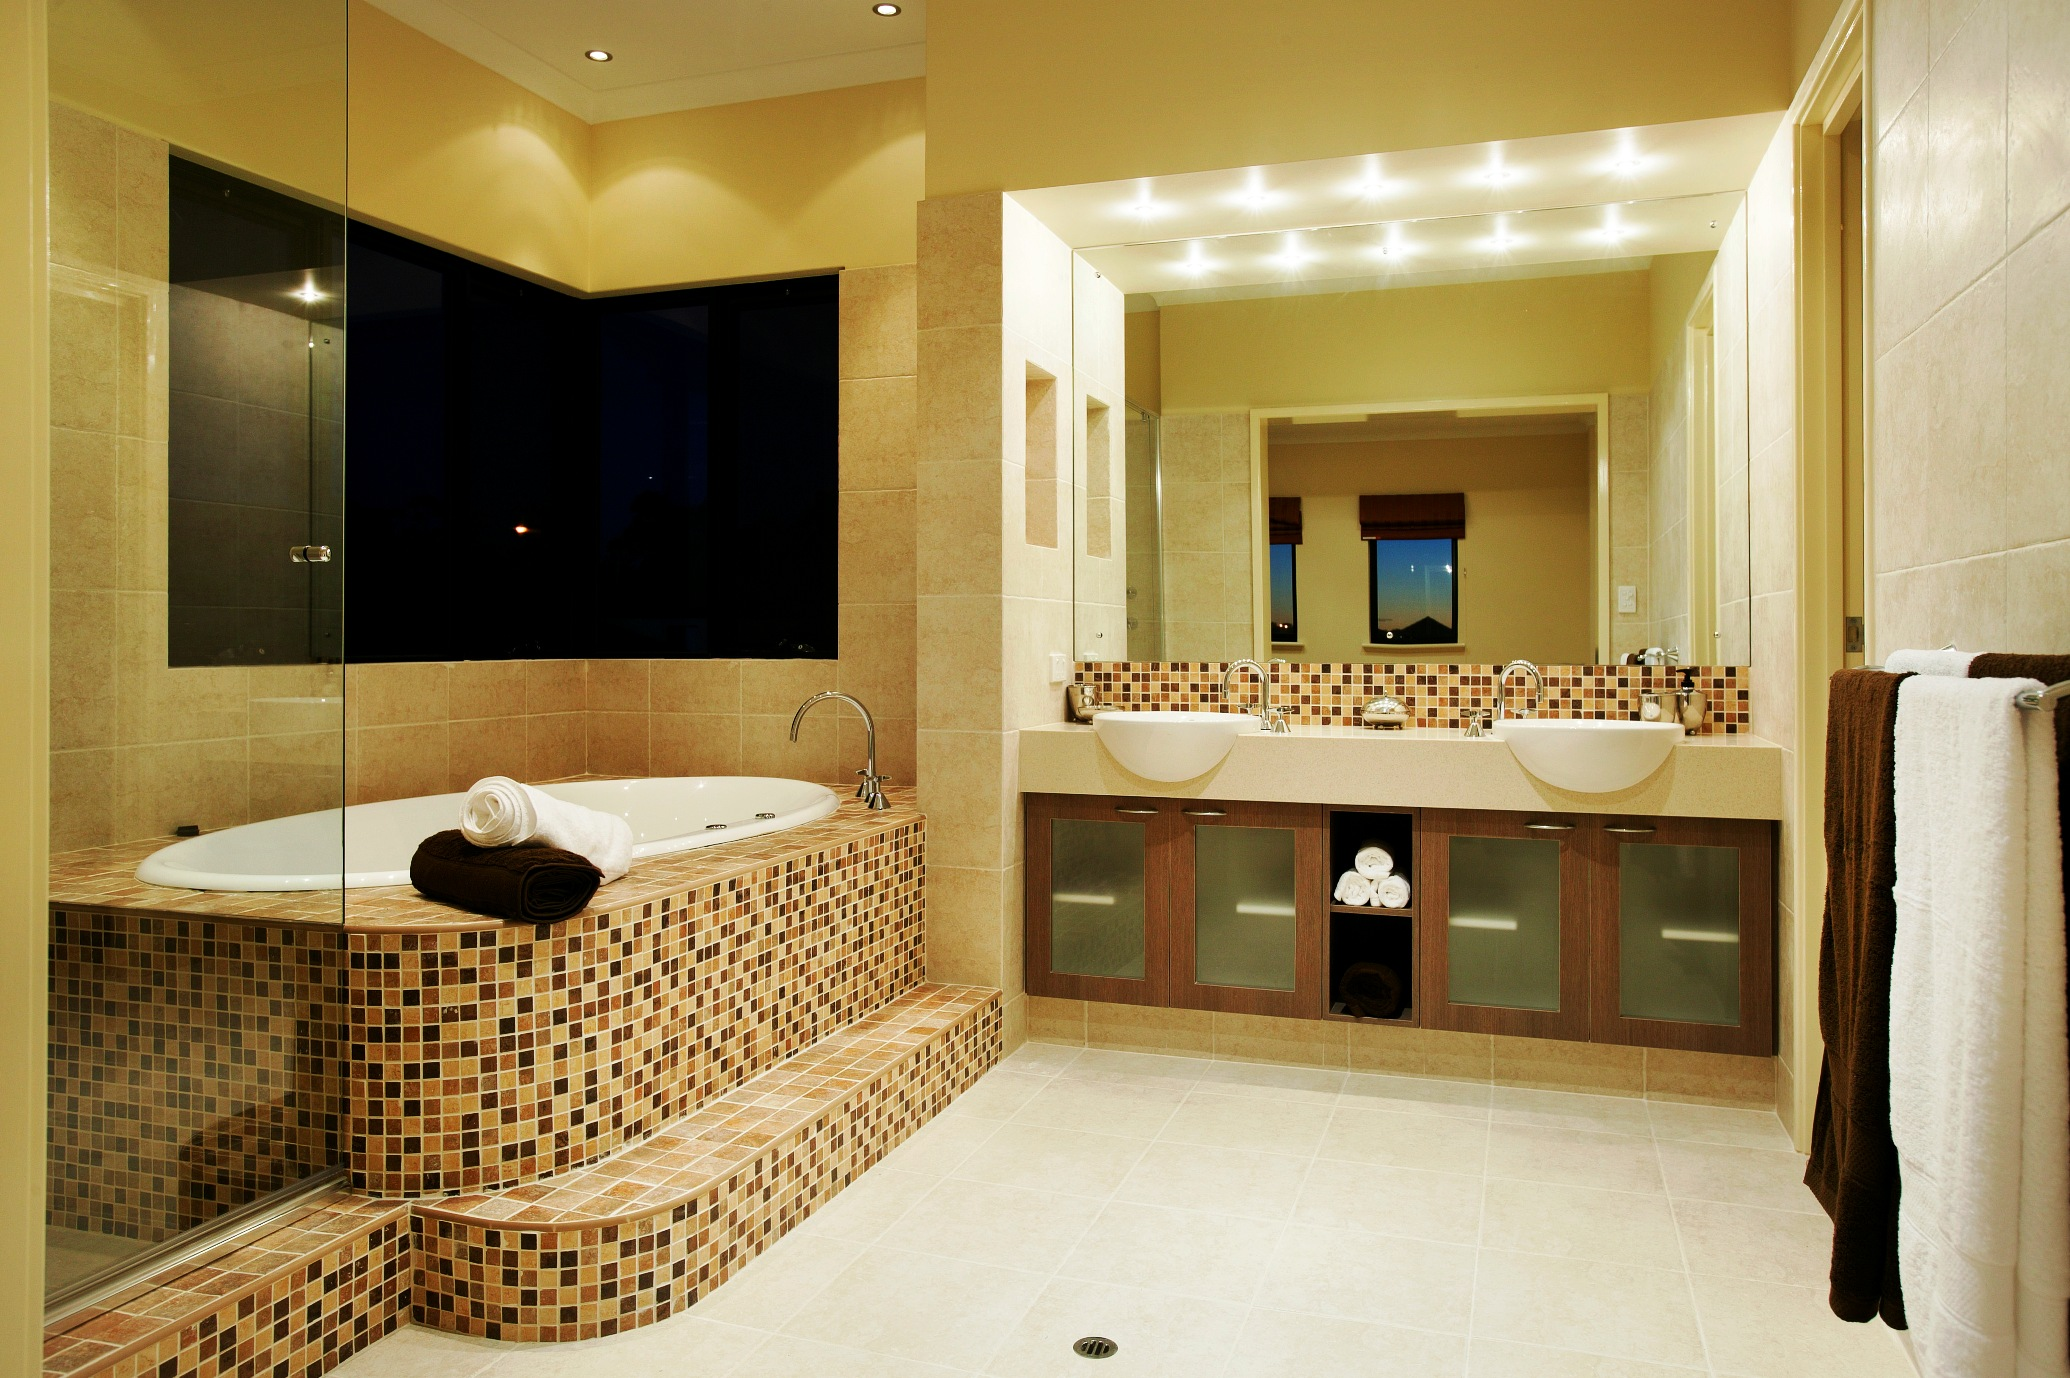 Bathroom Design - Bathroom interior design - Bathroom ...